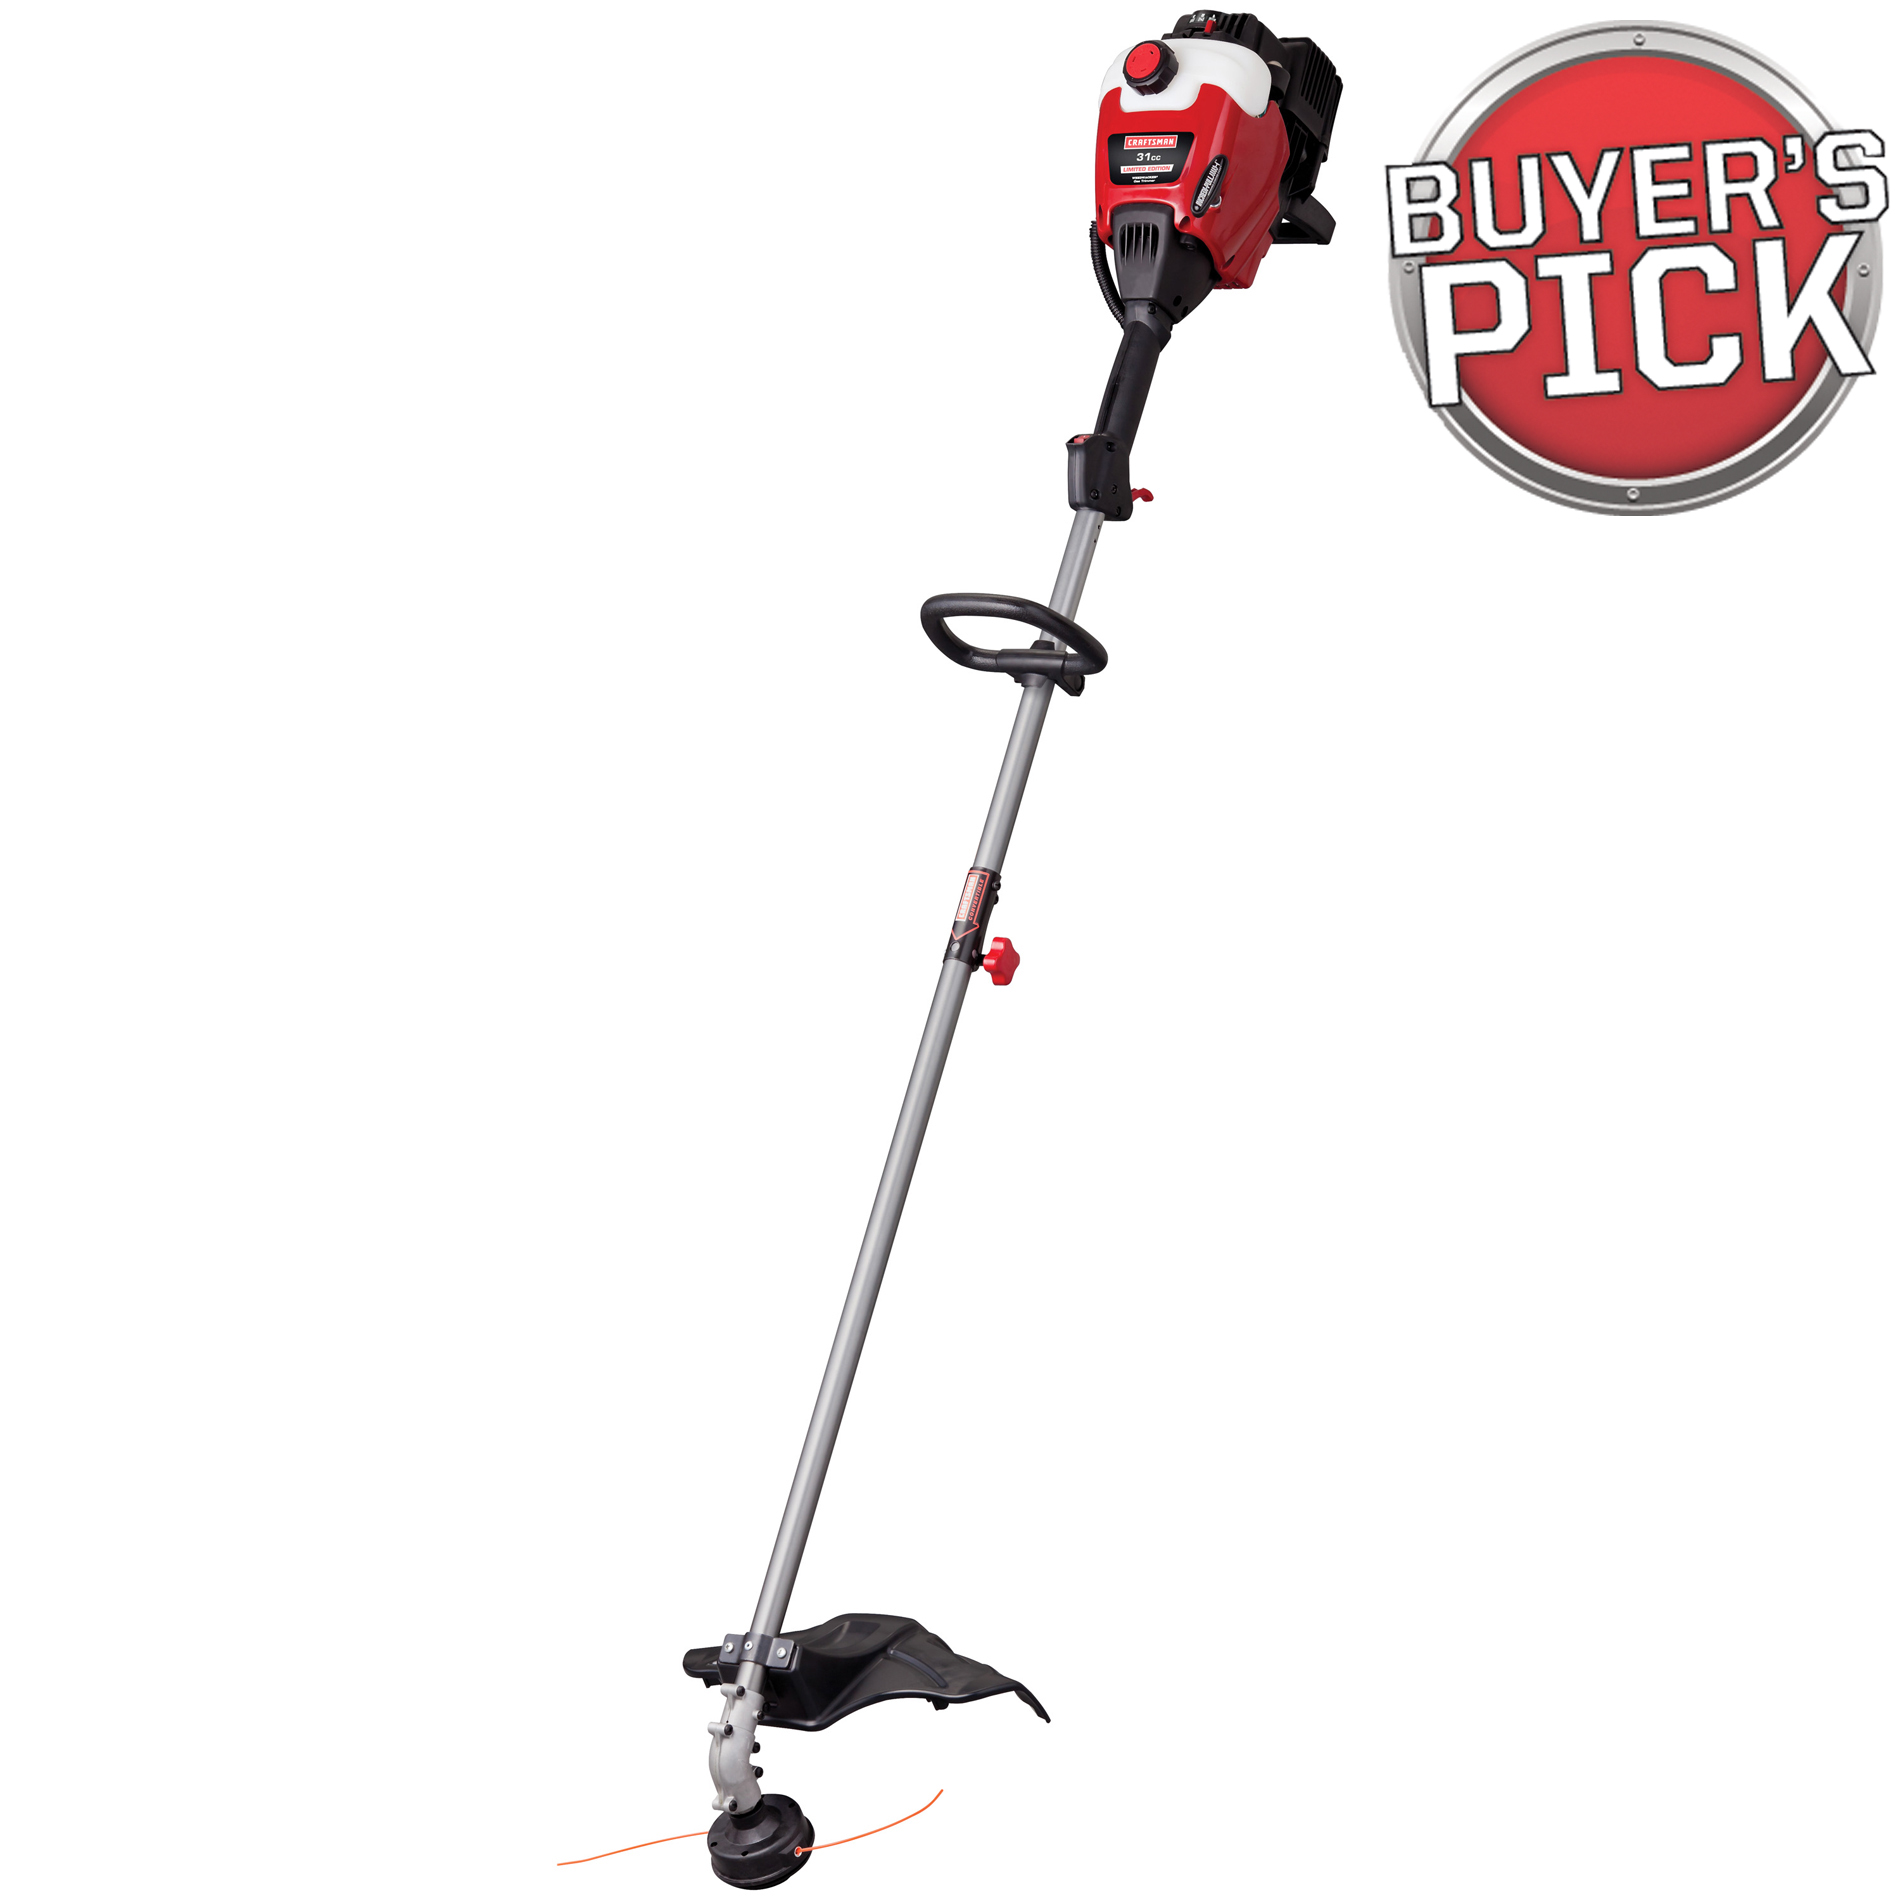 Craftsman 31cc* 2-Cycle Straight Shaft WeedWacker™ Gas Trimmer